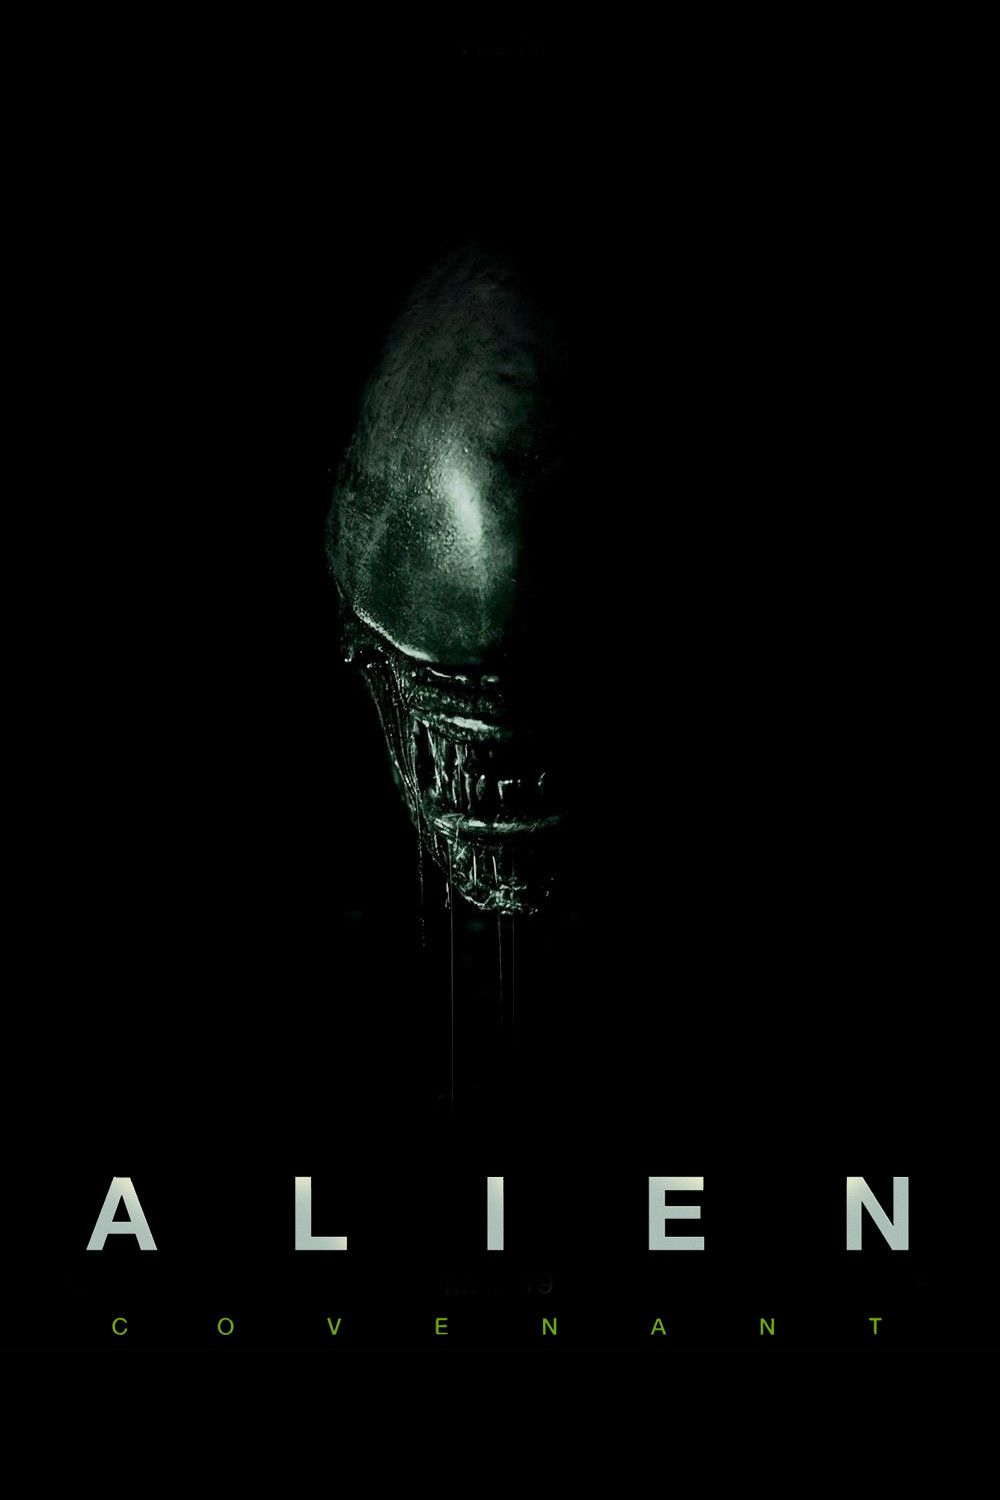 alien covenant 2017 watch movies free online watch